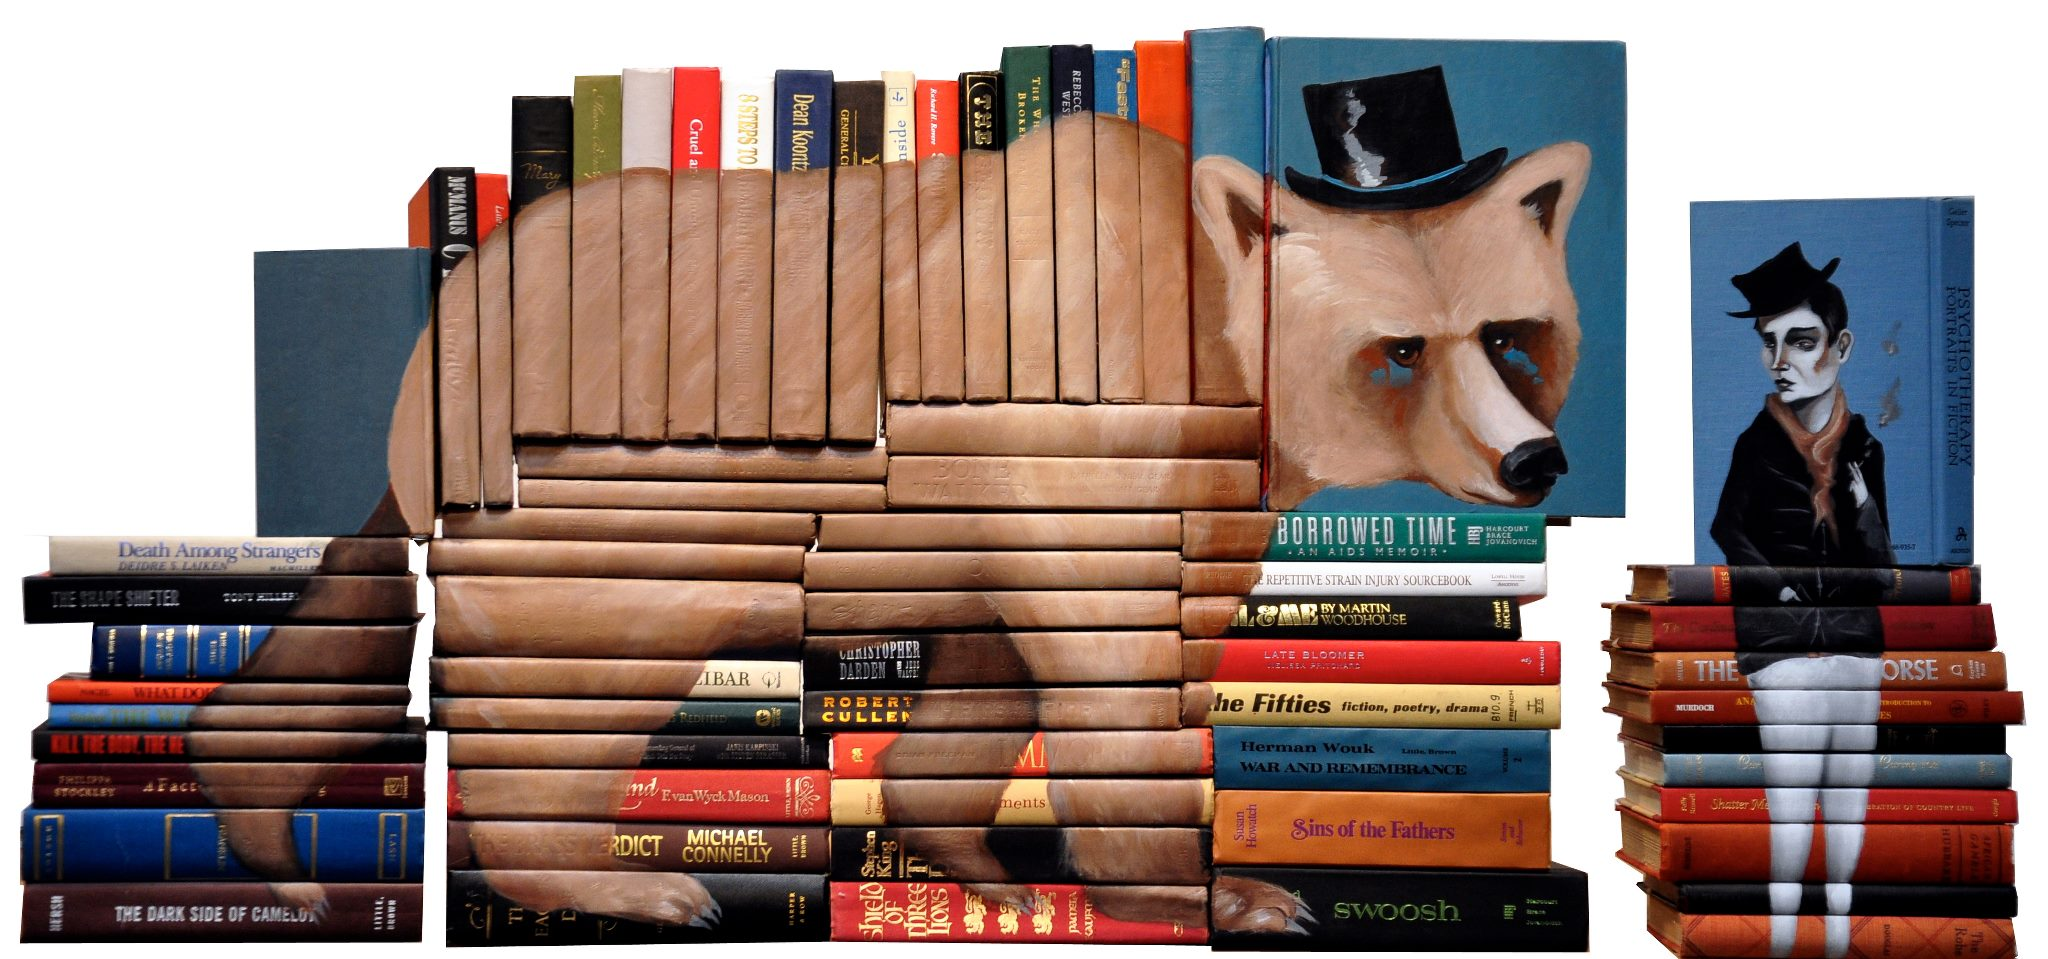 Mike Stilkey's Painted Books